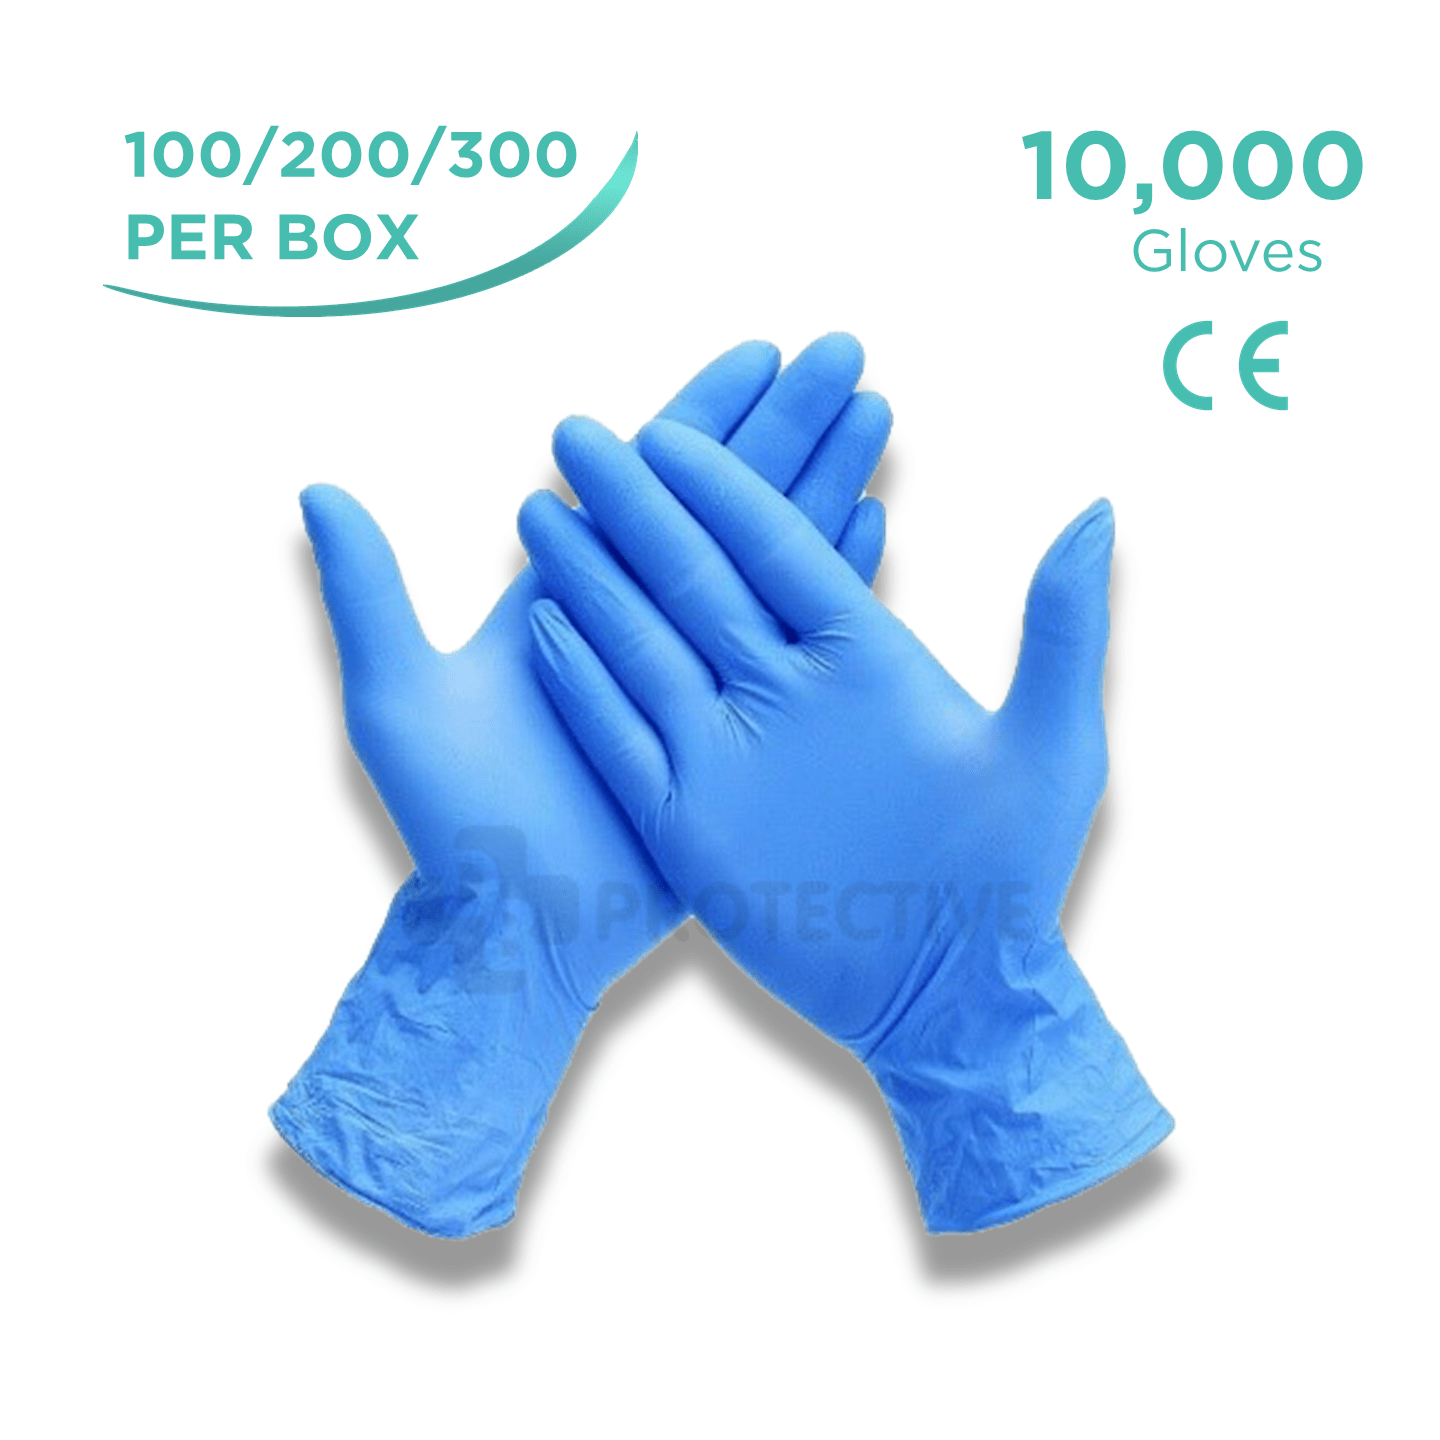 Blue Nitrile Gloves - Pack of 10,000 - USA Medical Supply - DB Protective